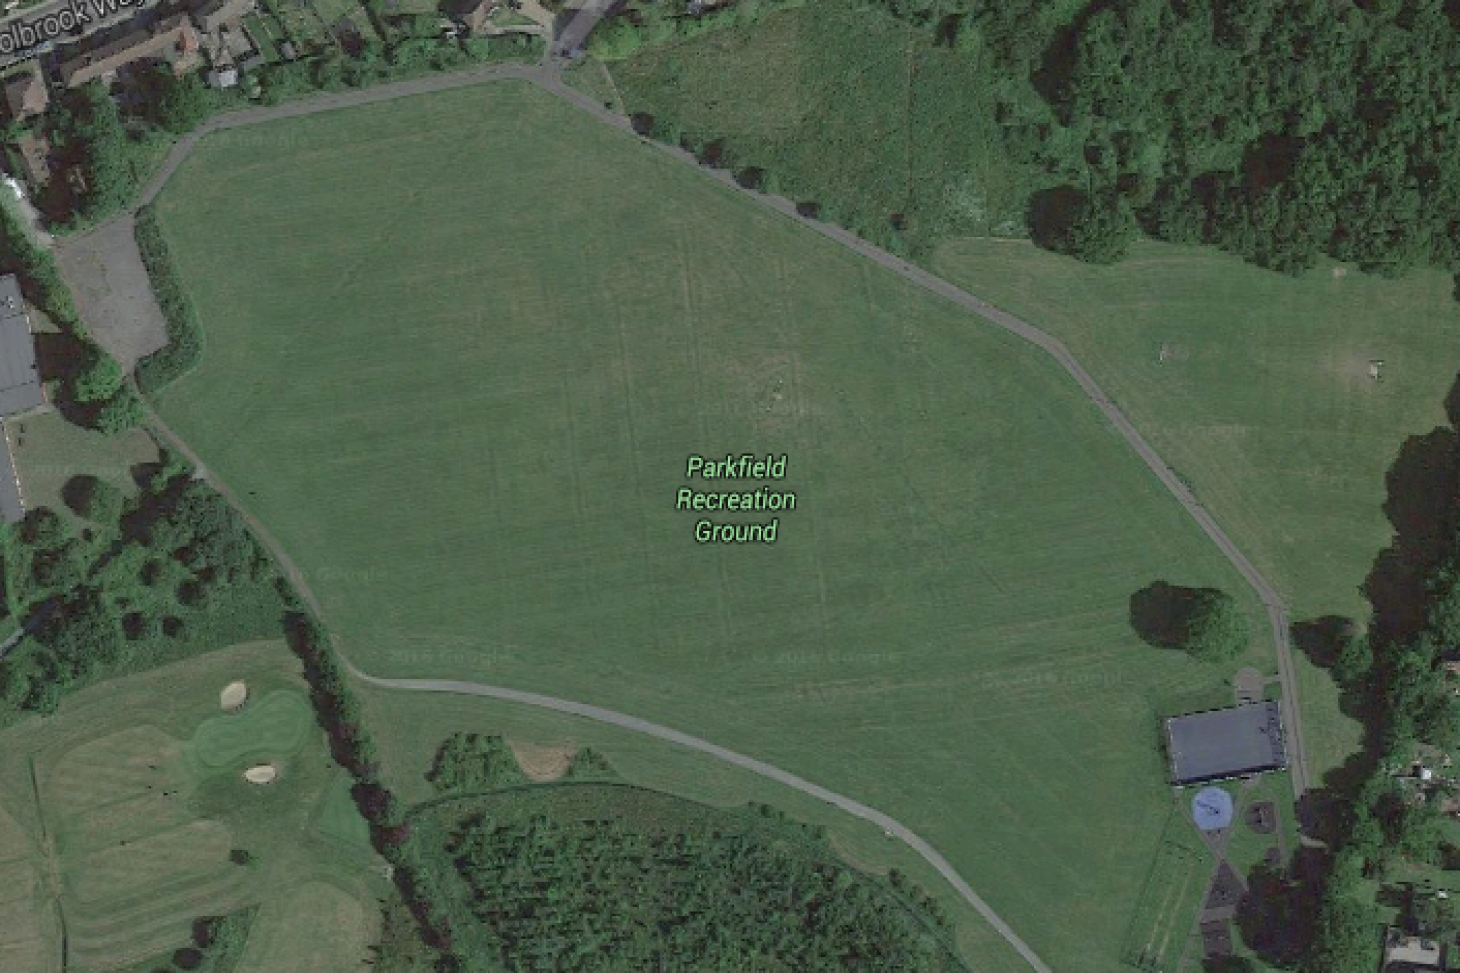 Parkfield Recreation Ground 11 a side | Grass football pitch